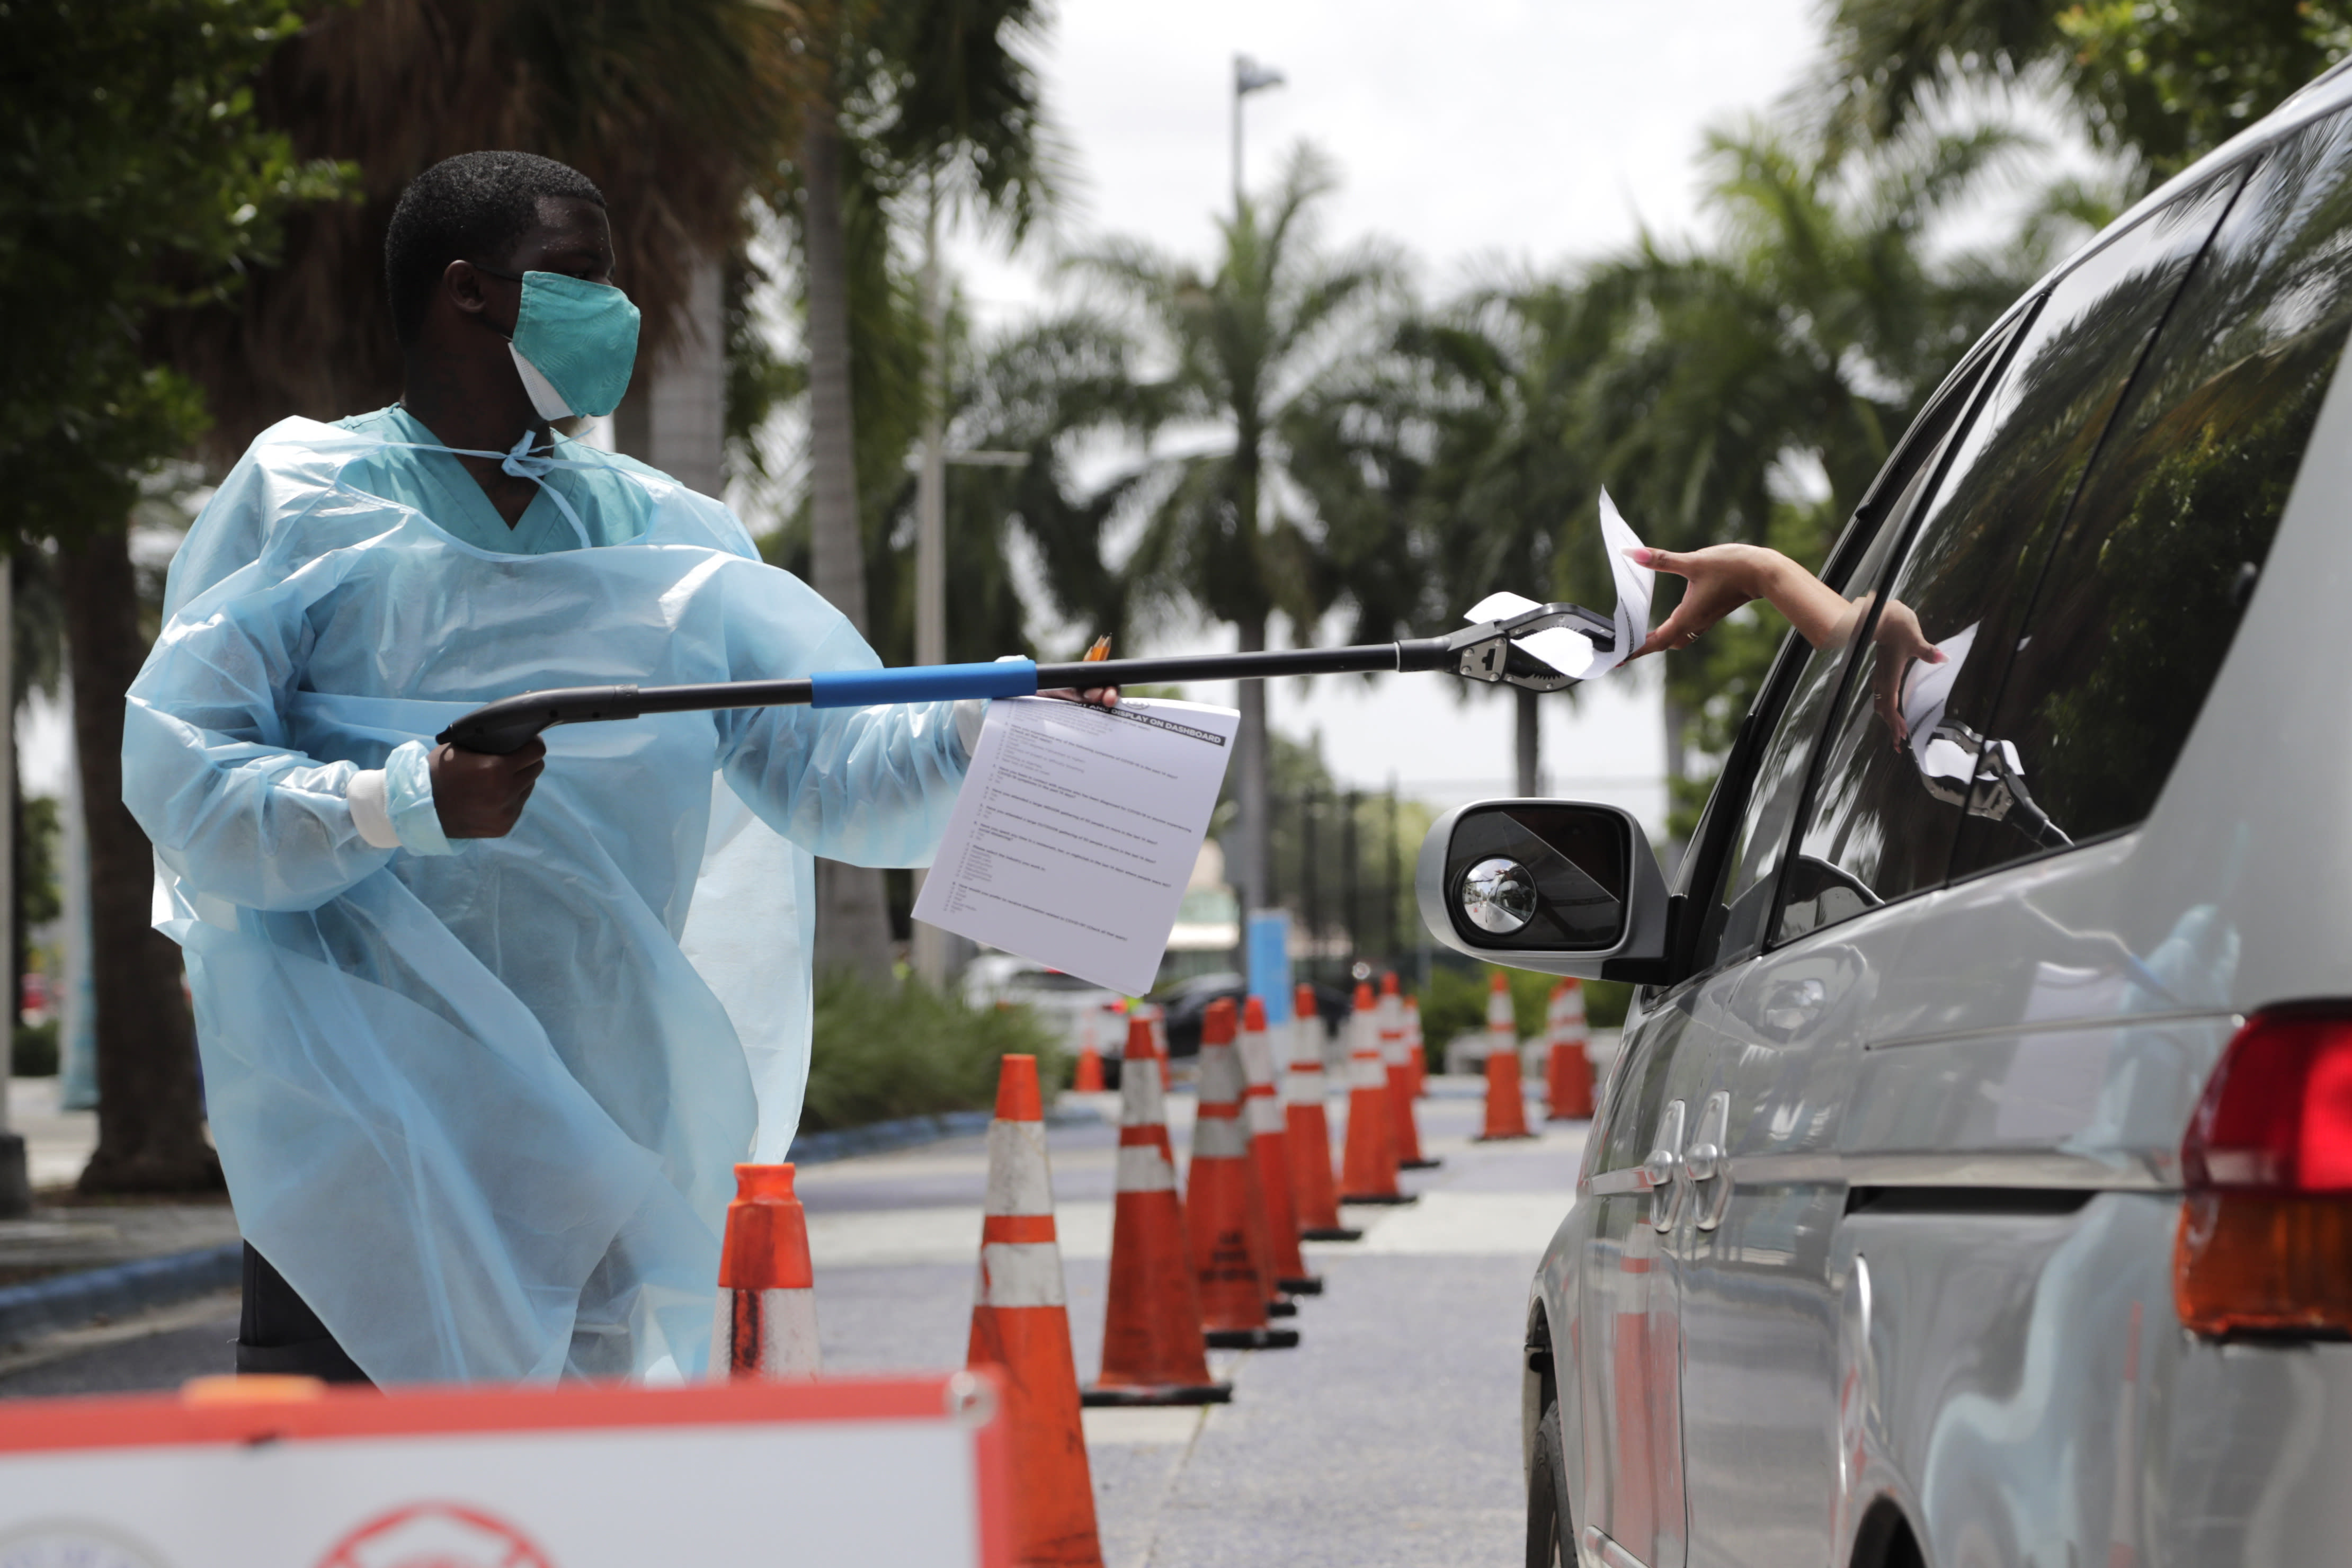 Healthcare worker Dante Hills, left, passes paperwork to a woman in a vehicle at a COVID-19 testing site outside of Marlins Park, Monday, July 27, 2020, in Miami. The Marlins home opener against the Baltimore Orioles on Monday night has been postponed as the Marlins deal with a coronavirus outbreak that stranded them in Philadelphia. (AP Photo/Lynne Sladky)